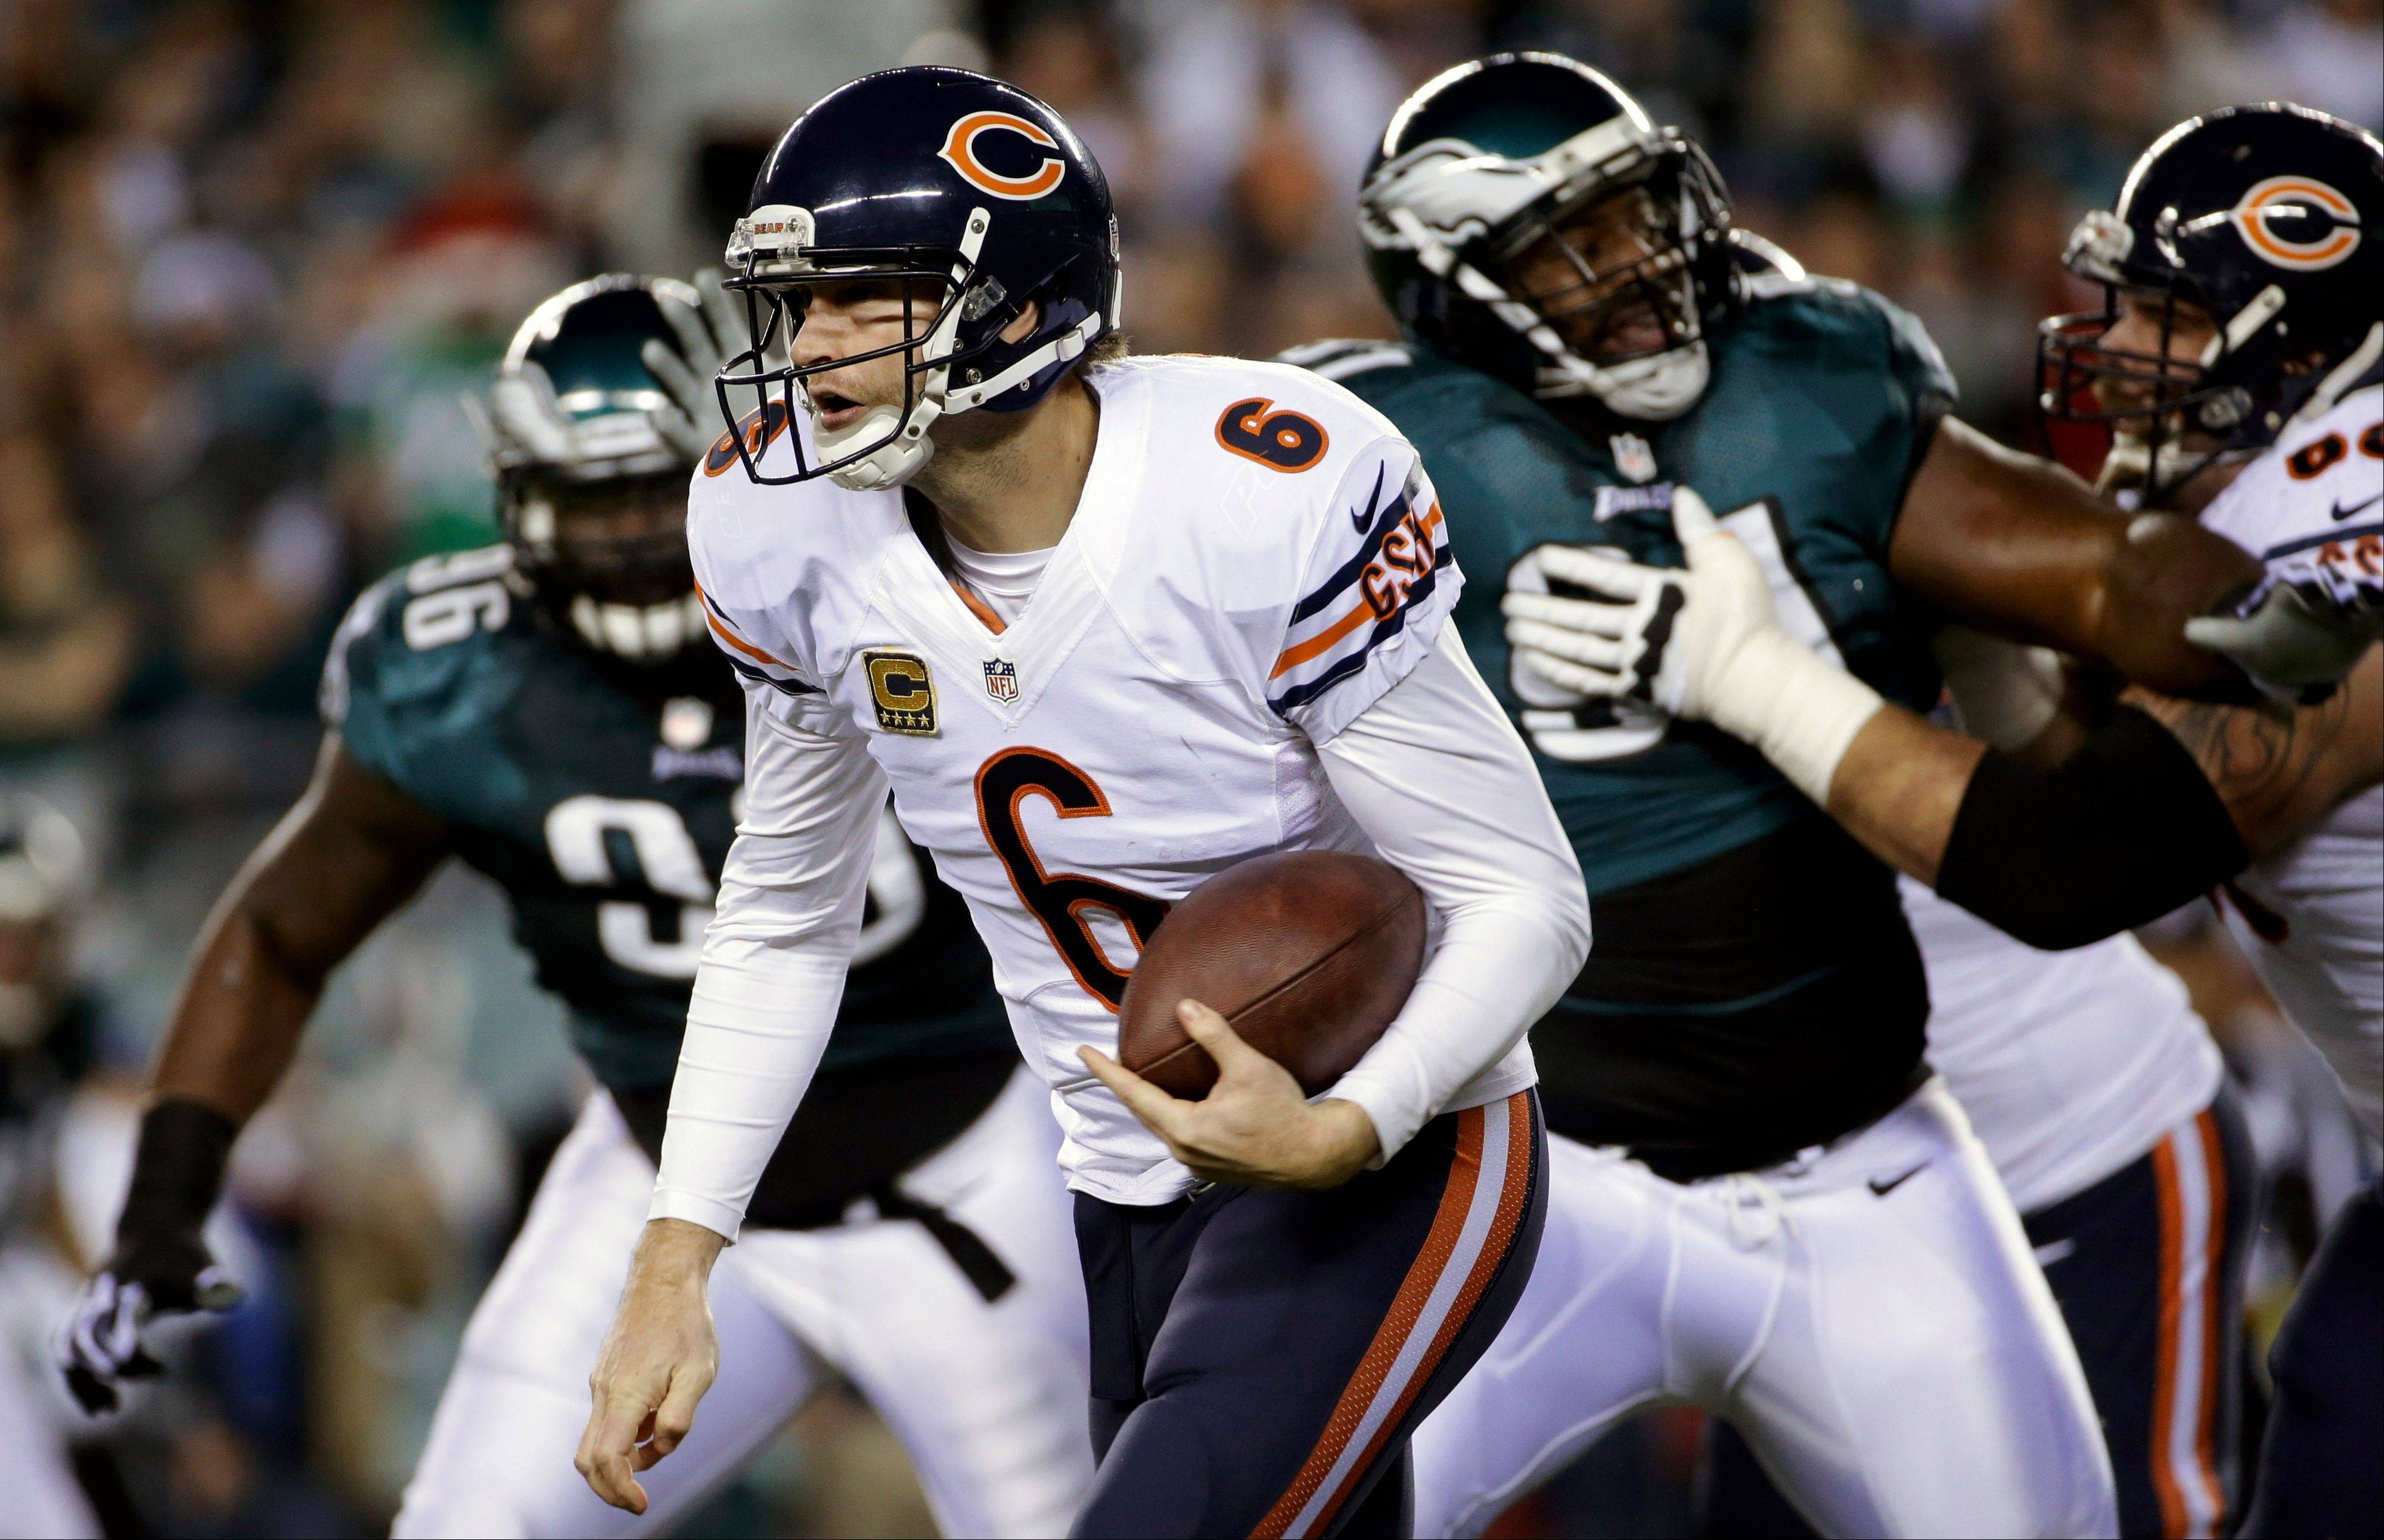 Chicago Bears' Jay Cutler scrambles during the first half of an NFL football game against the Philadelphia Eagles, Sunday, Dec. 22, 2013, in Philadelphia.